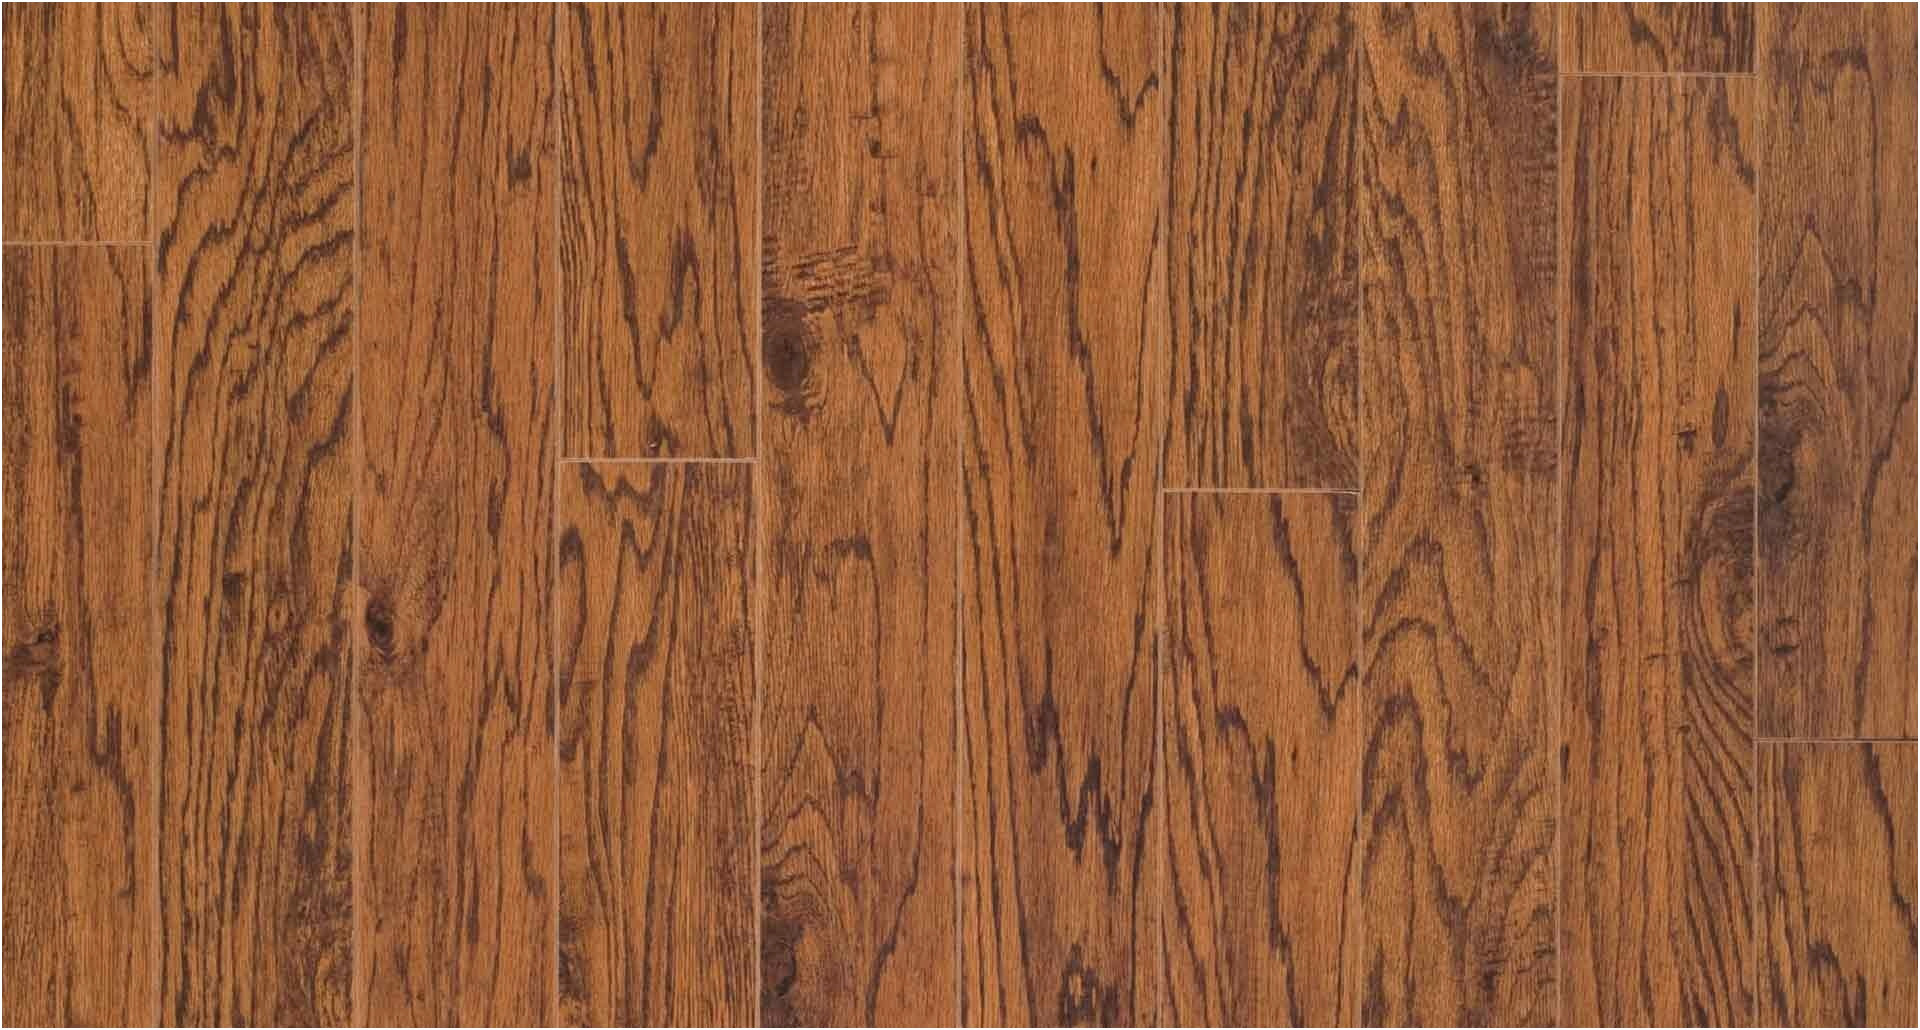 solid hardwood vs engineered hardwood vs laminate flooring of laminate flooring vs engineered hardwood floor throughout laminate flooring vs engineered hardwood 50 fresh engineered vs solid hardwood flooring 50 s